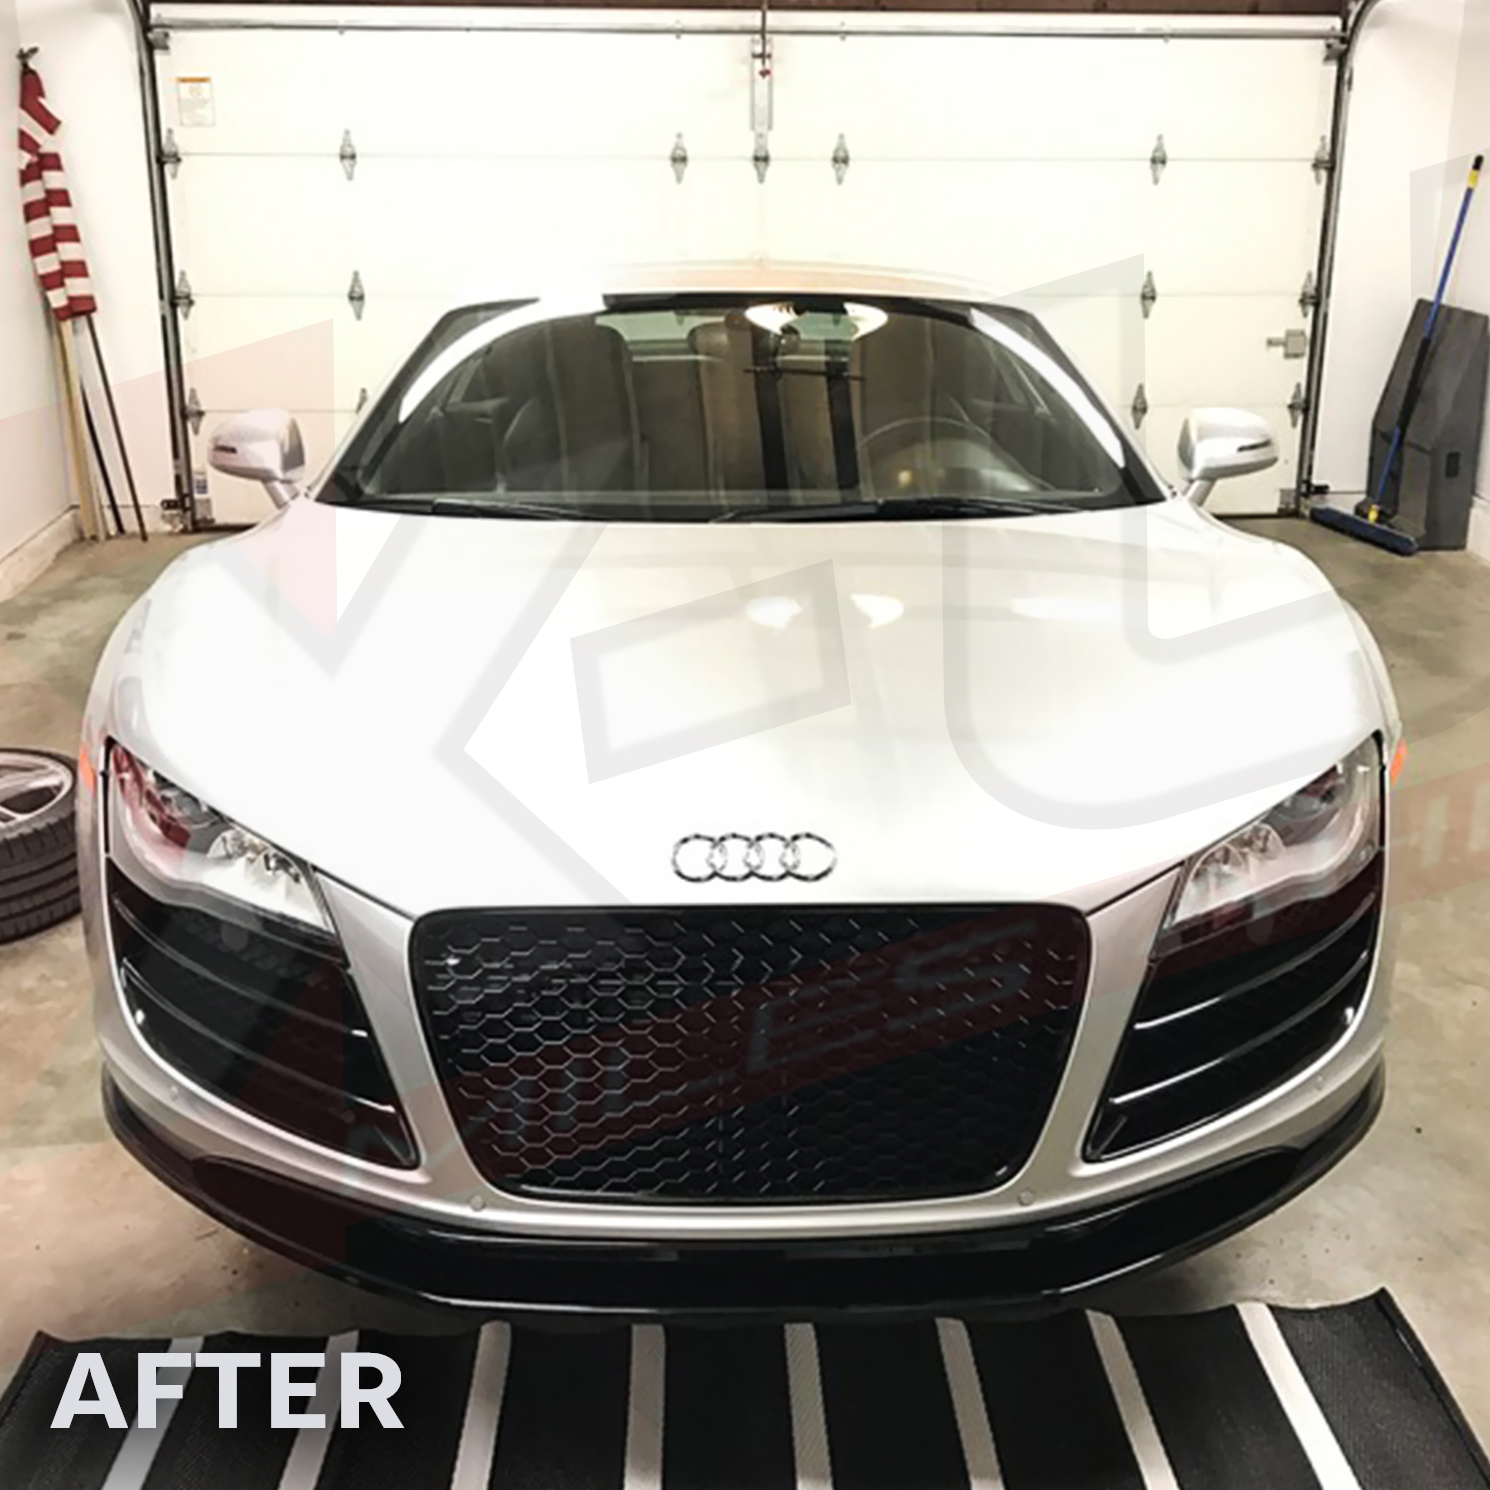 """AUDI R8 front grill 2007-2012 pre-facelift """"gloss black"""""""